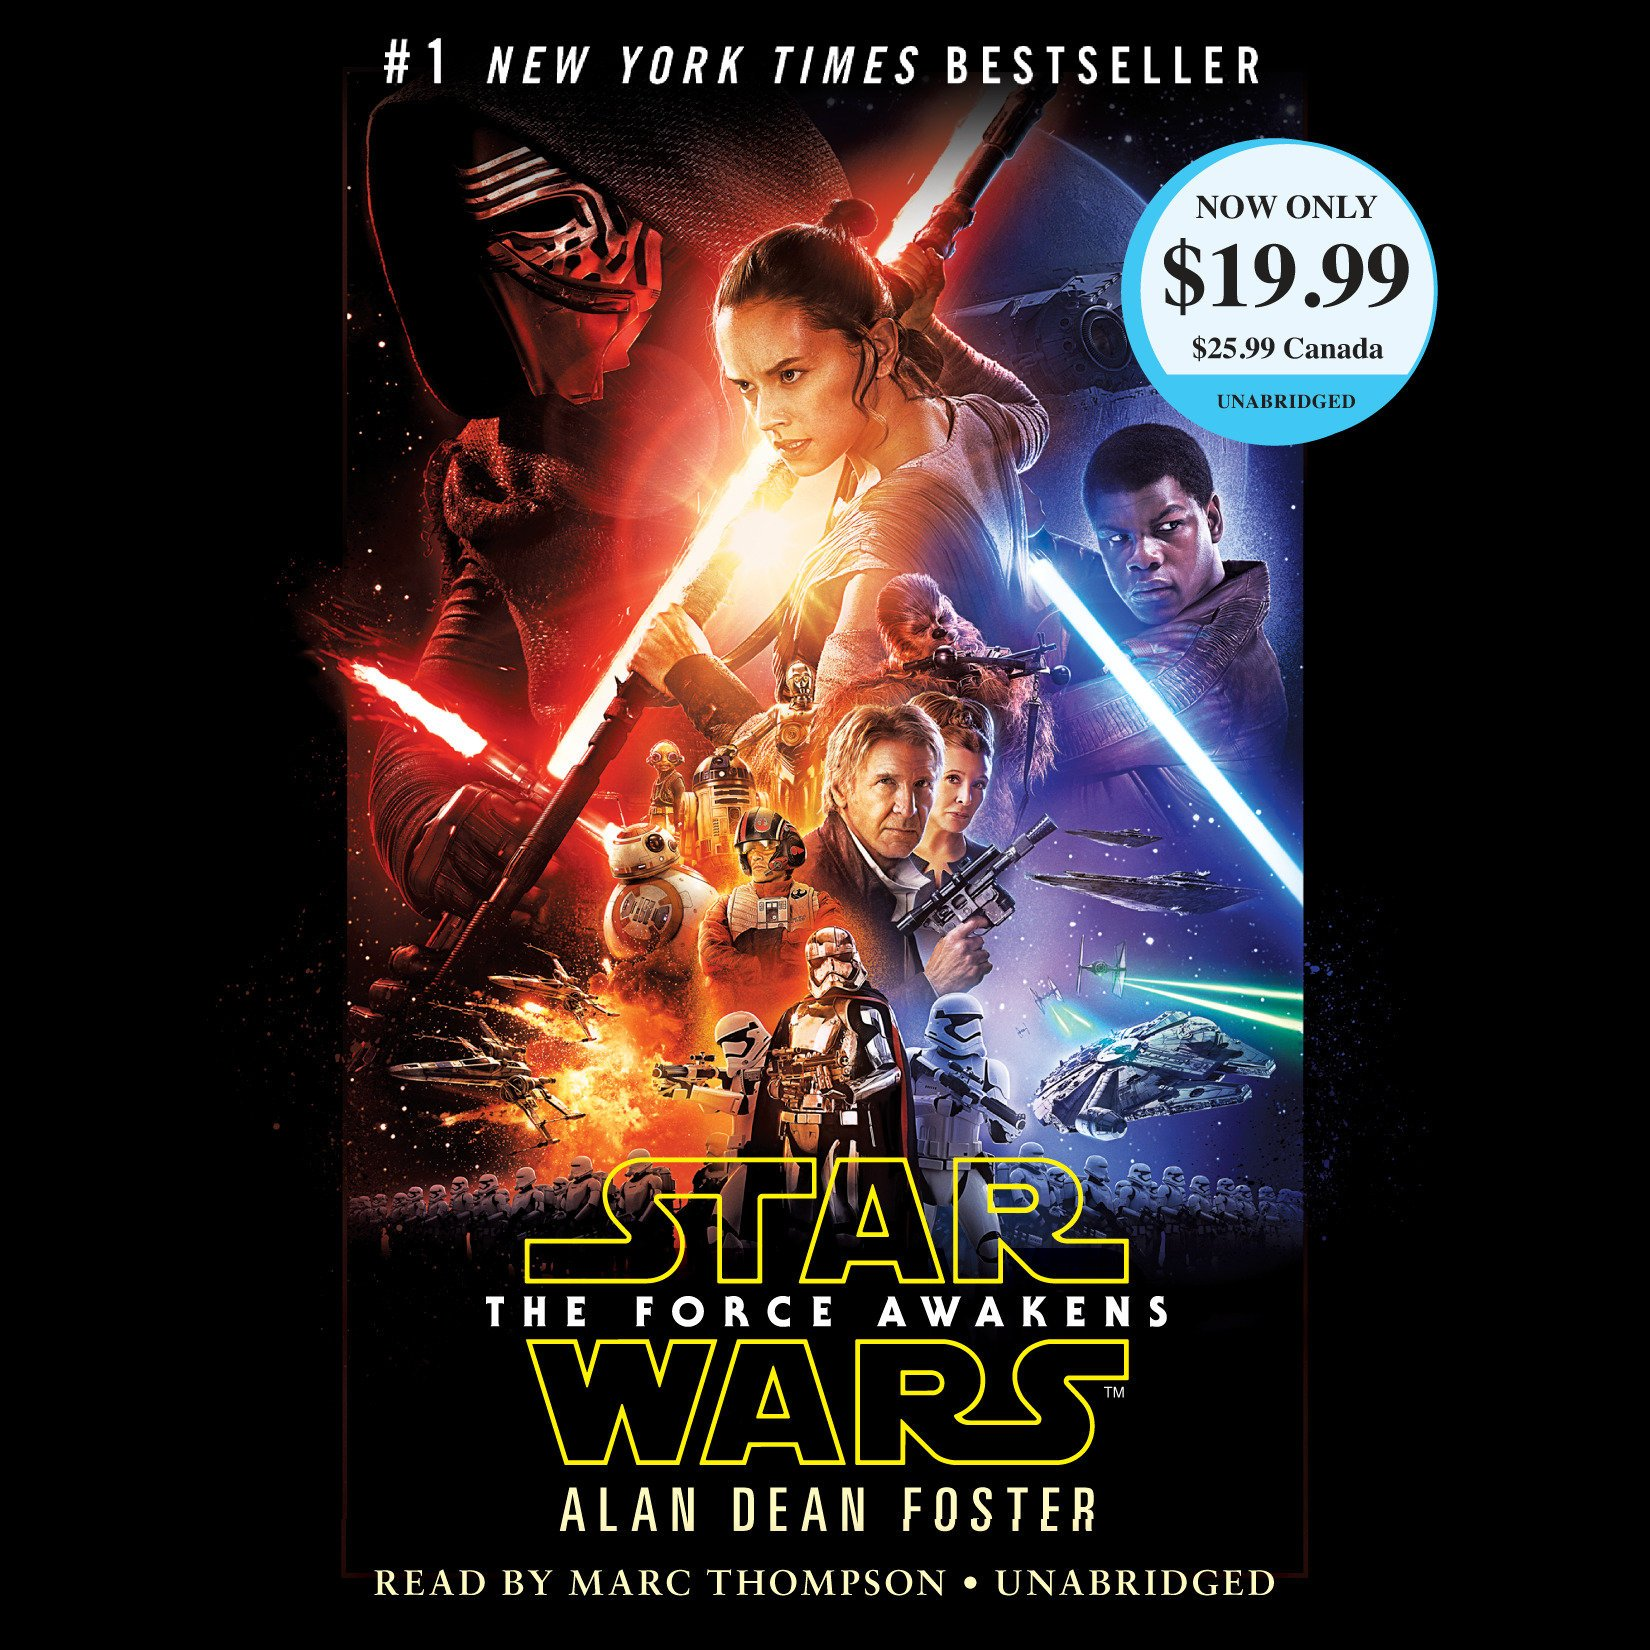 The Force Awakens Star Wars Star Wars: The Force Awakens ...